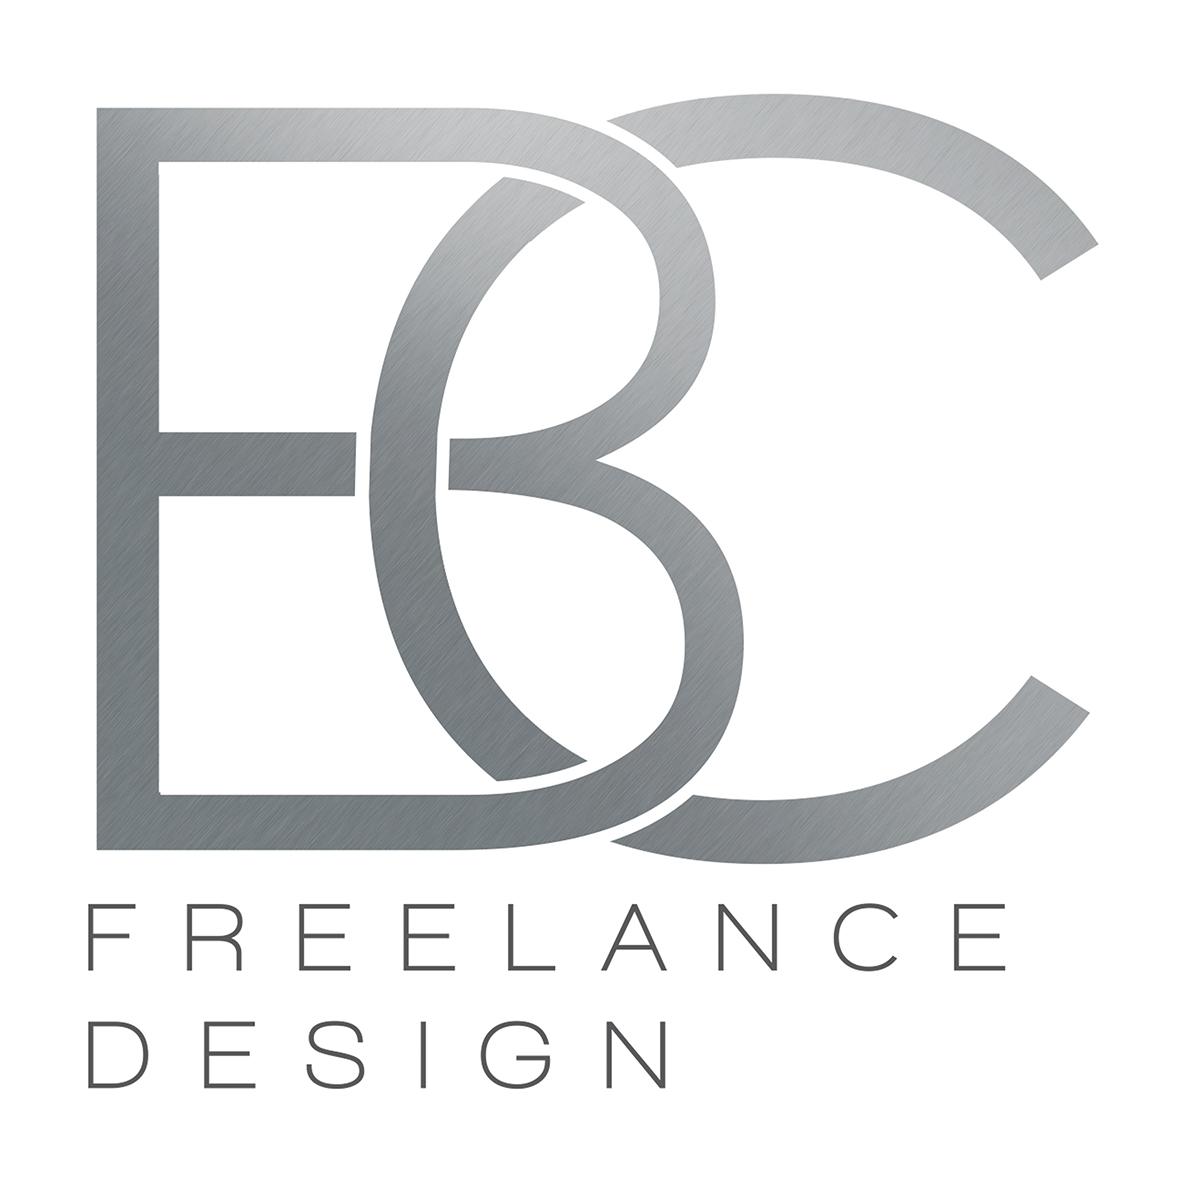 BC freelance design - Accommodation Broome